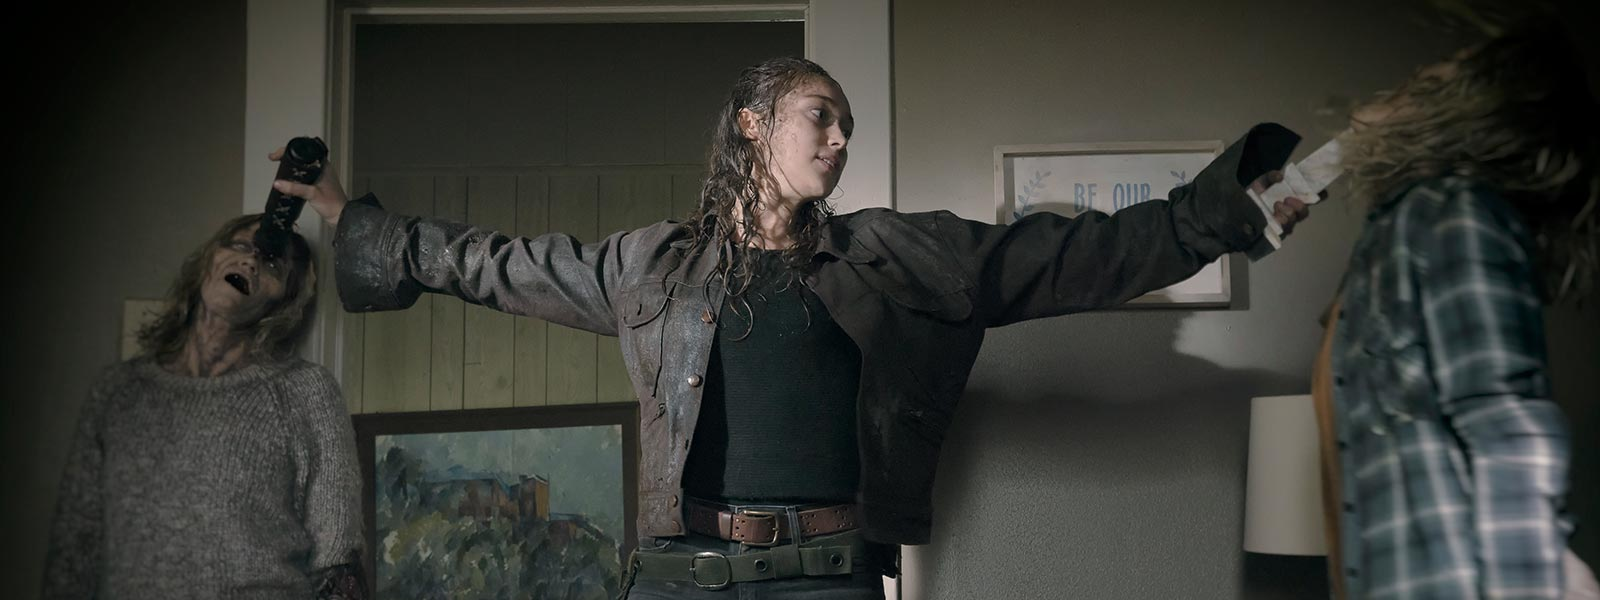 fear-the-walking-dead-episode-410-alicia-debnam-carey-post-800×600